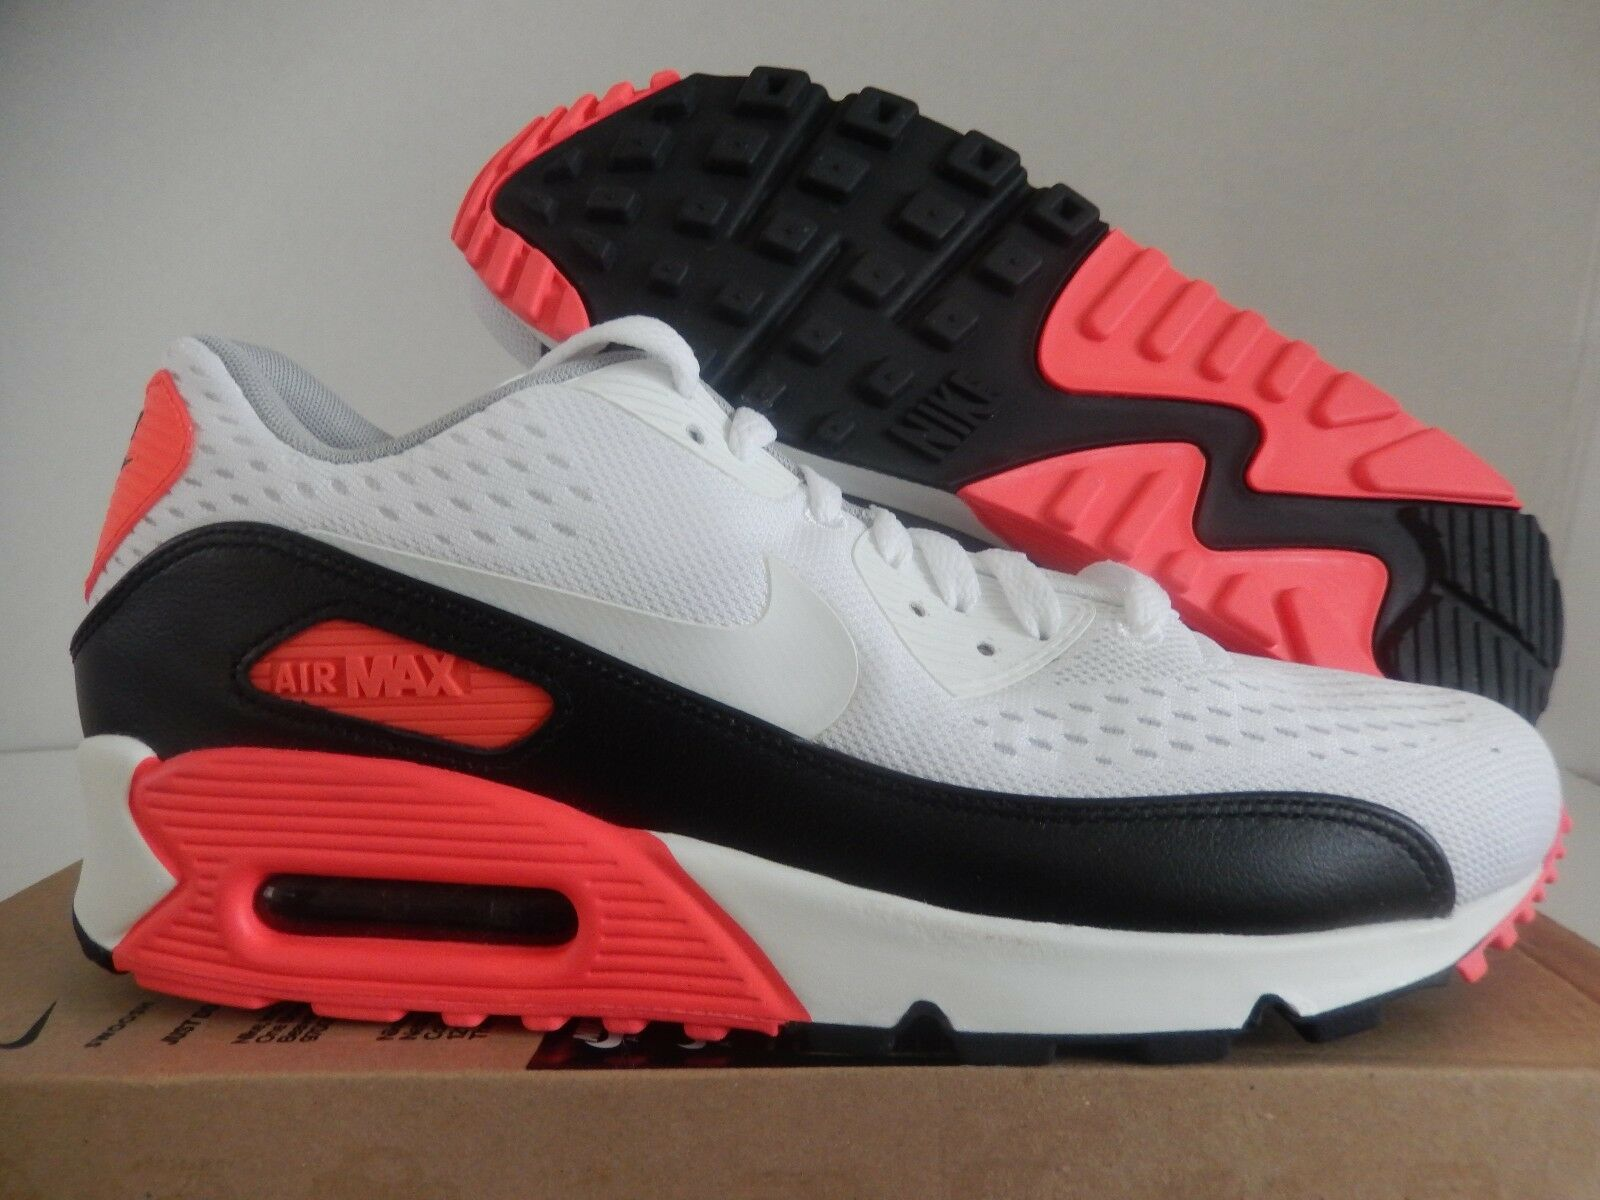 NIKE AIR MAX 90 EM ENGINEERED MESH WHITE-BLACK-INFRARED SZ 12 [554719-110]